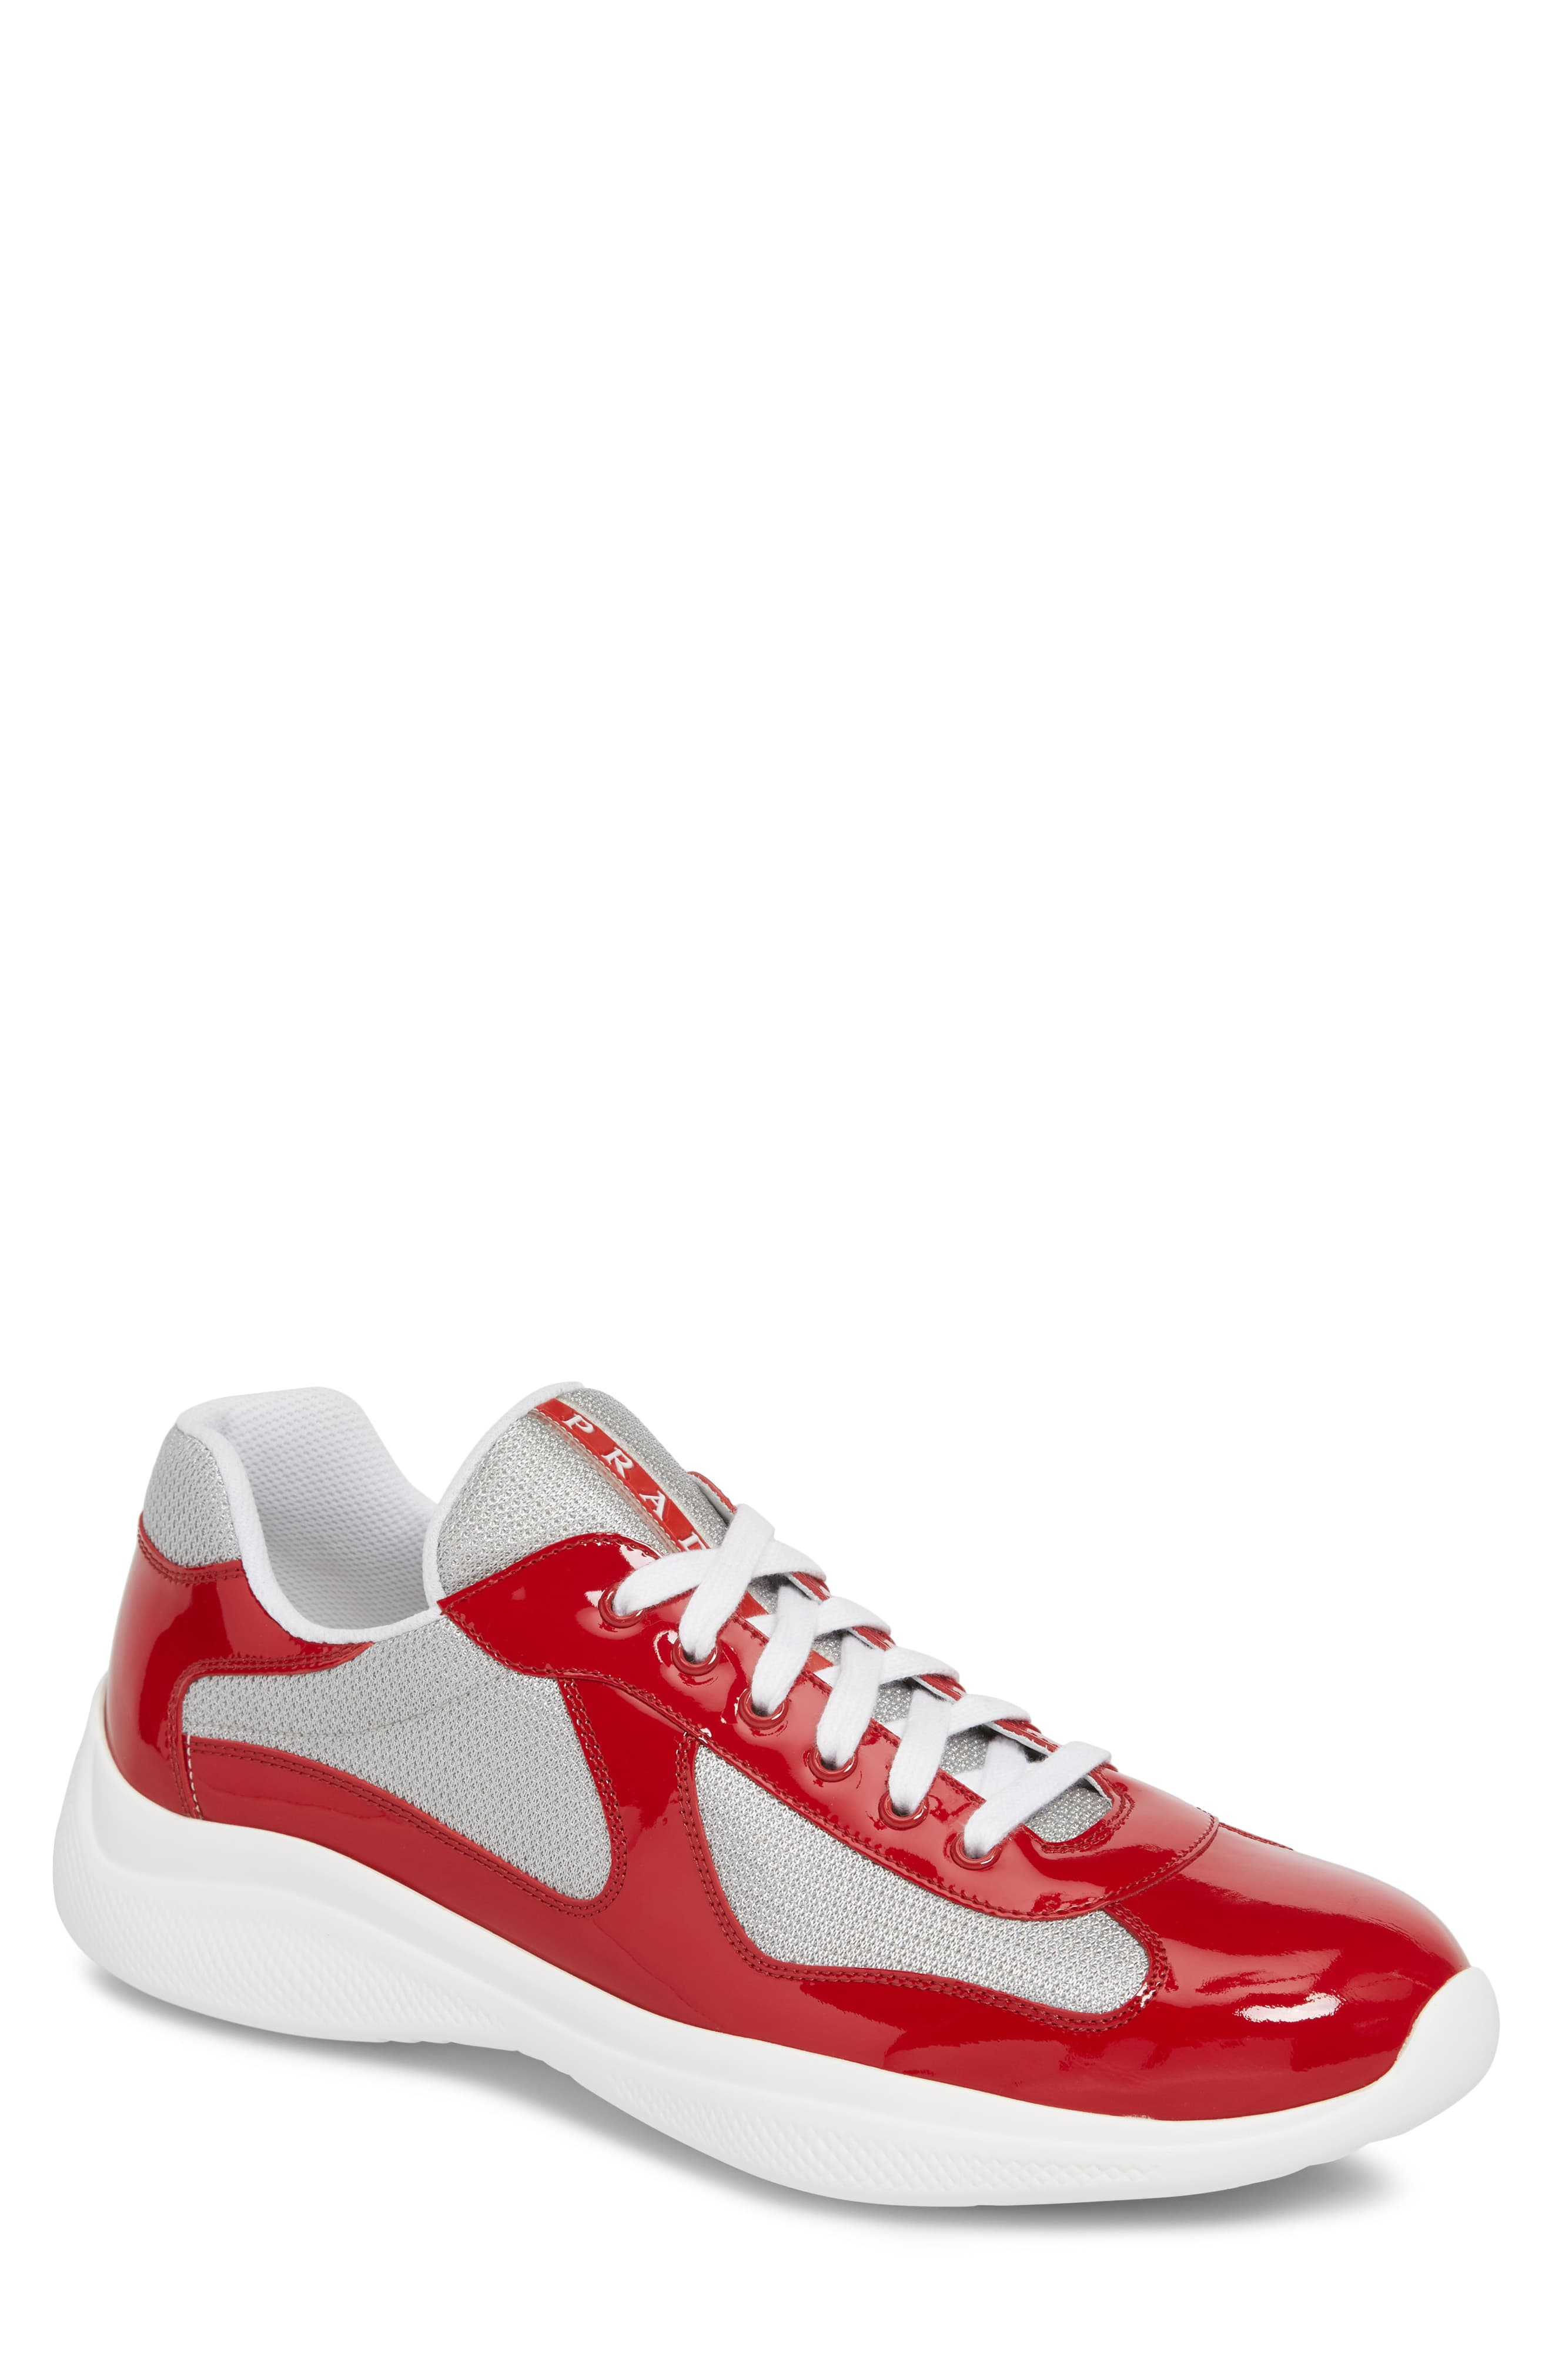 new style 88a9a 7ccc3 Men's Prada Americas Cup Sneaker, Size 8US / 7UK - Red